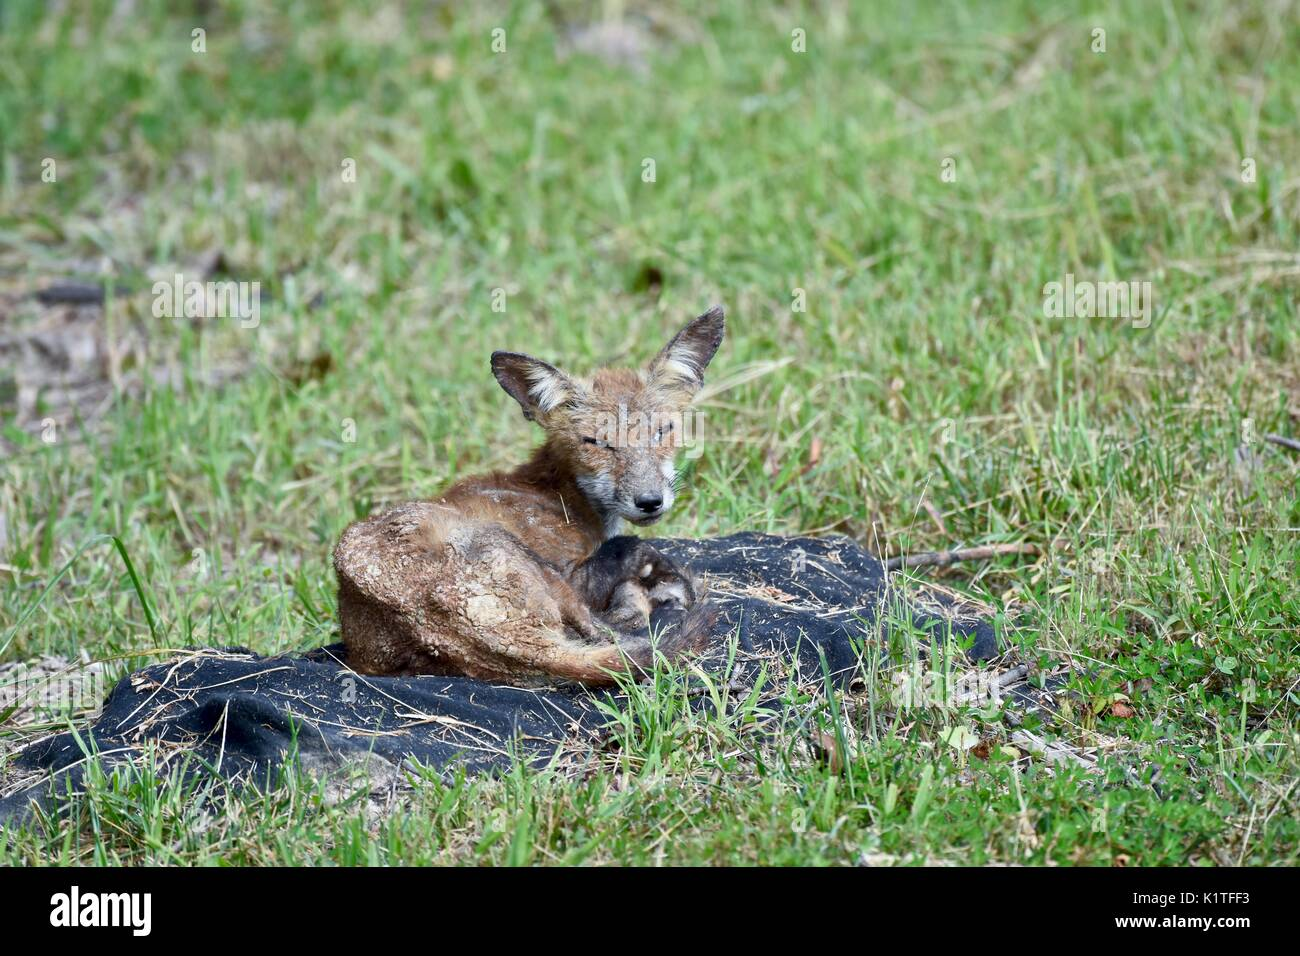 Sick and injured red fox (Vulpes vulpes) - Stock Image